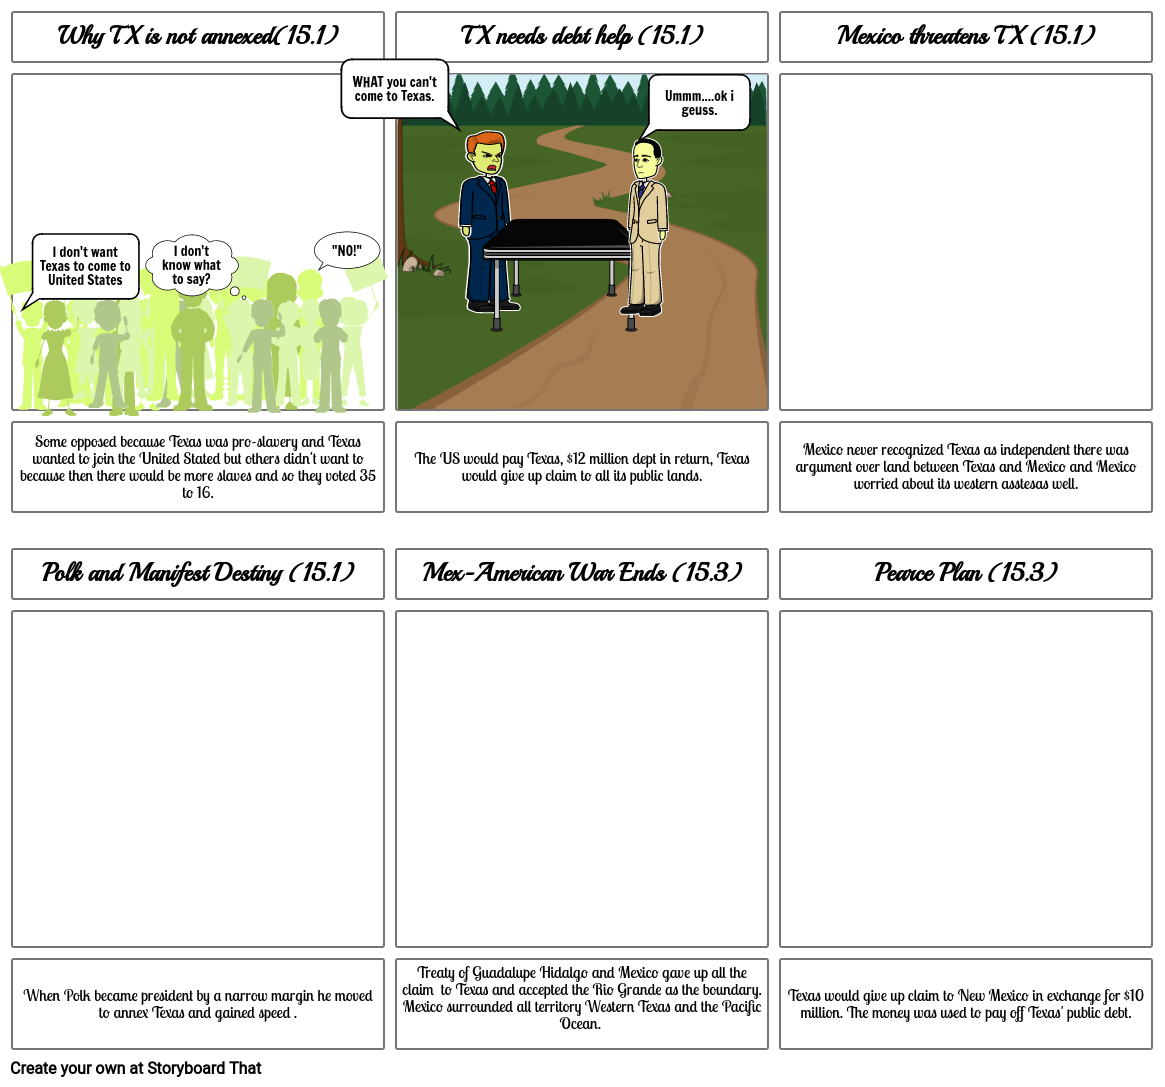 Texas Annexation Story Board